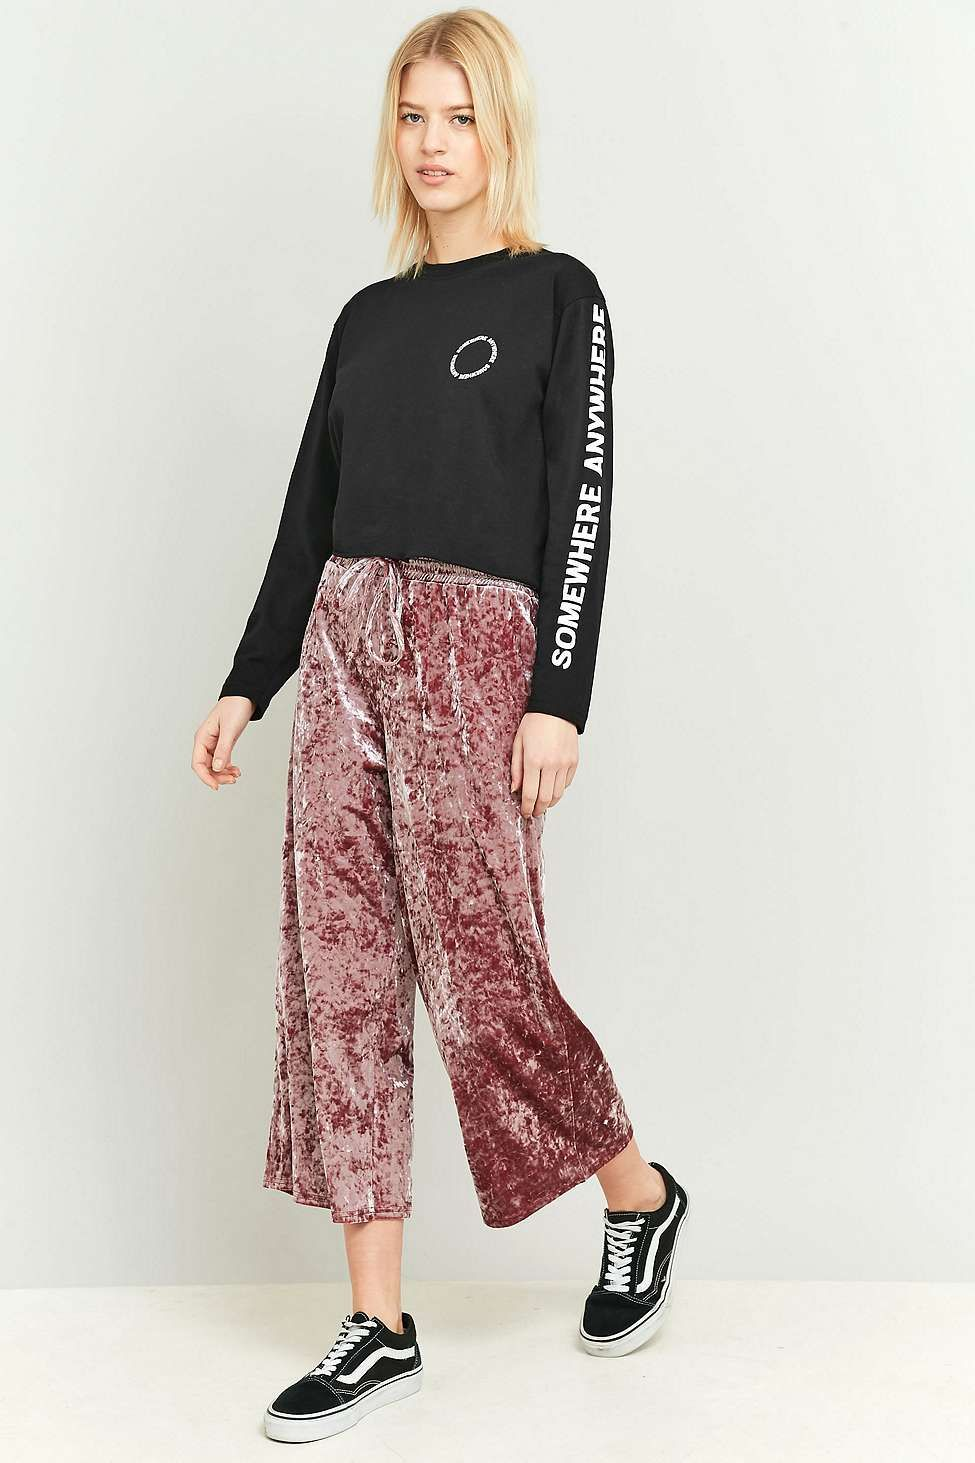 cc176eb765e46b Light Before Dark Pink Crushed Velvet Culottes Pink Culottes, Urban  Outfitters Women, Pink Velvet